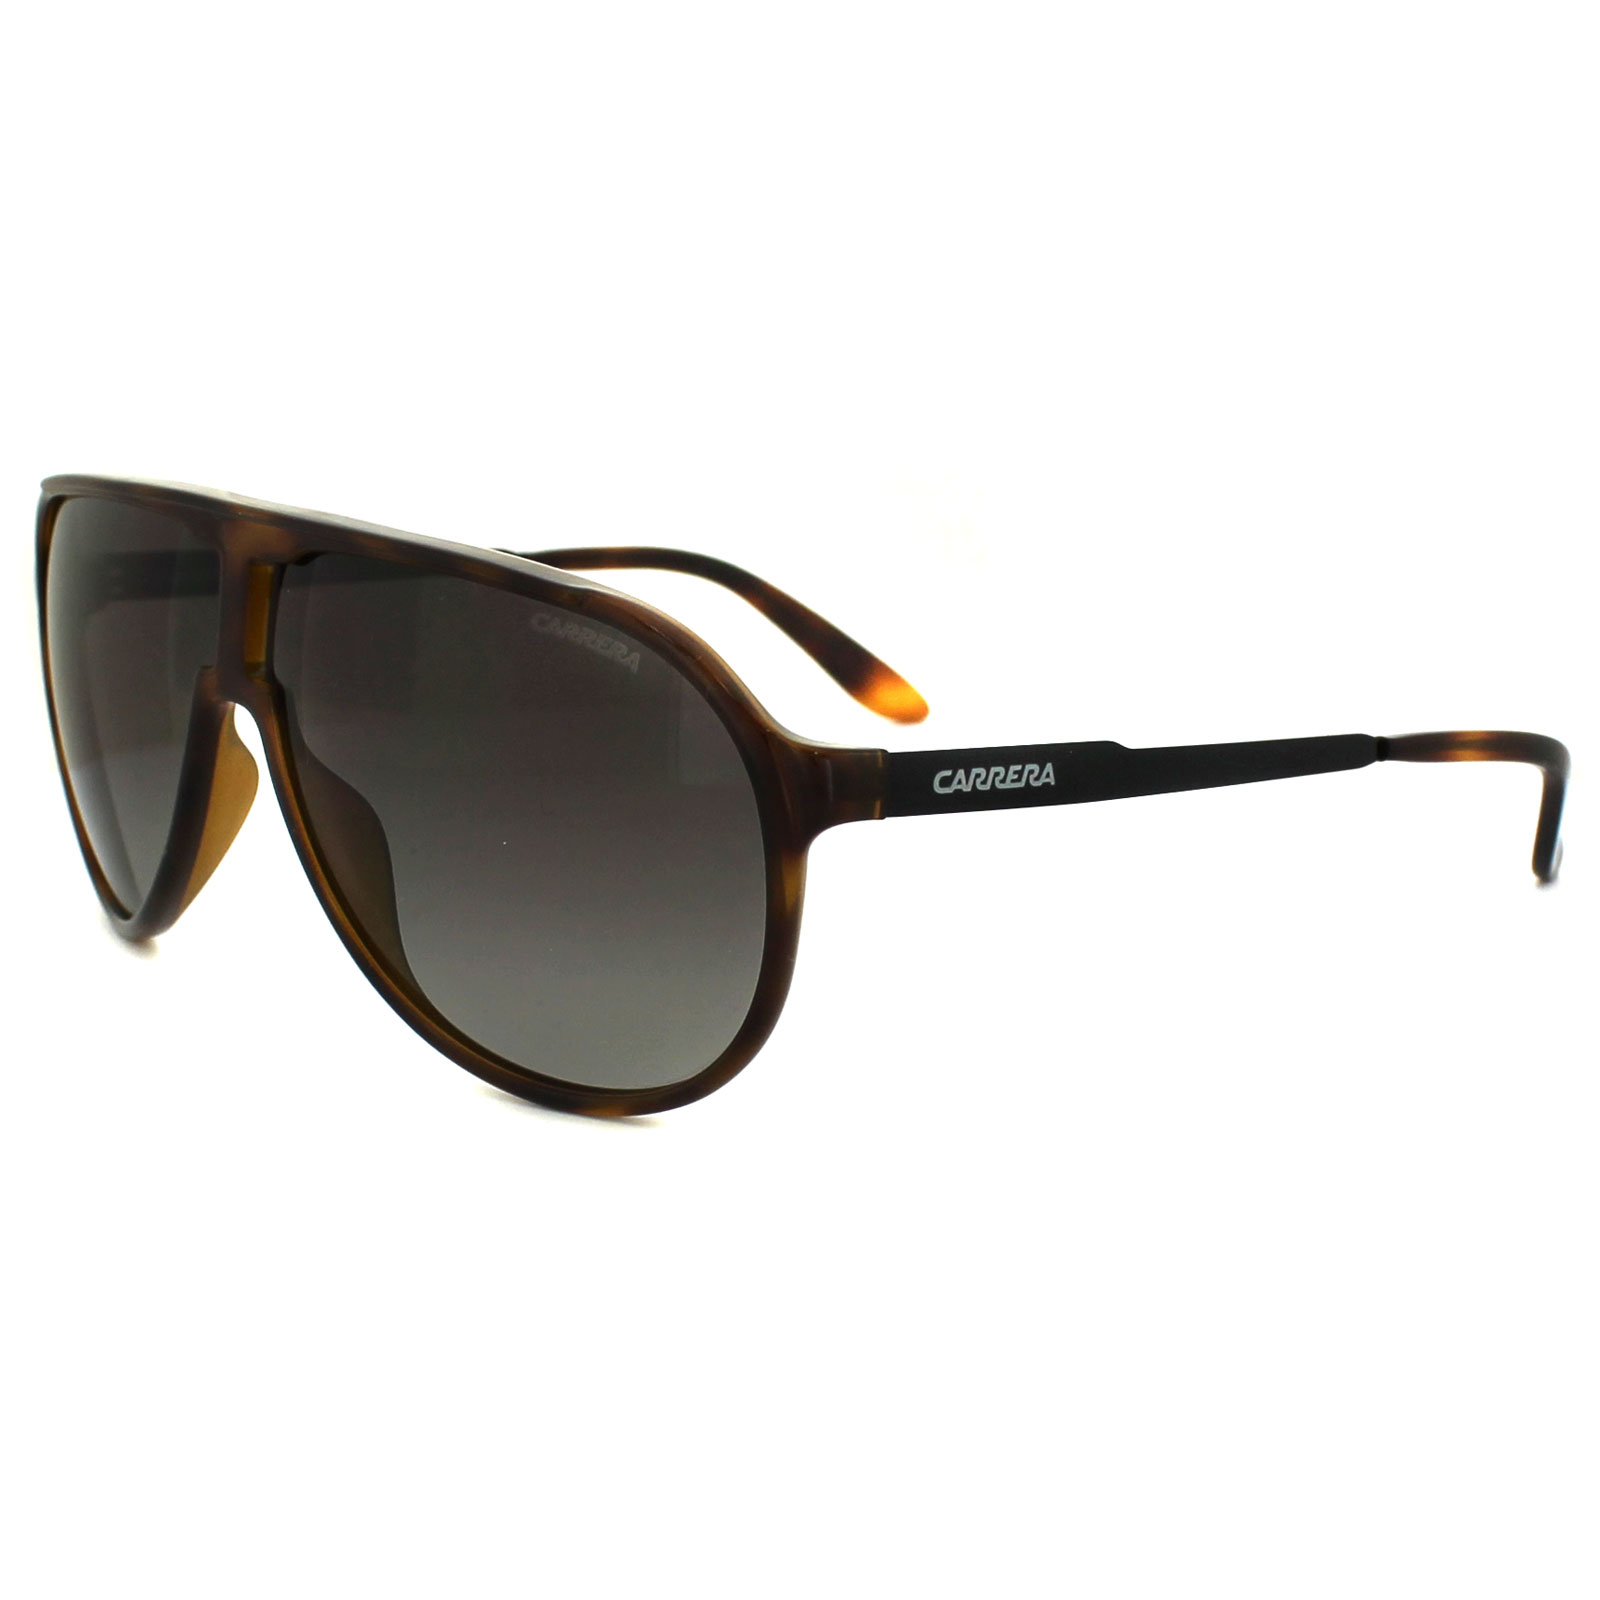 Cheap Carrera New Champion Sunglasses